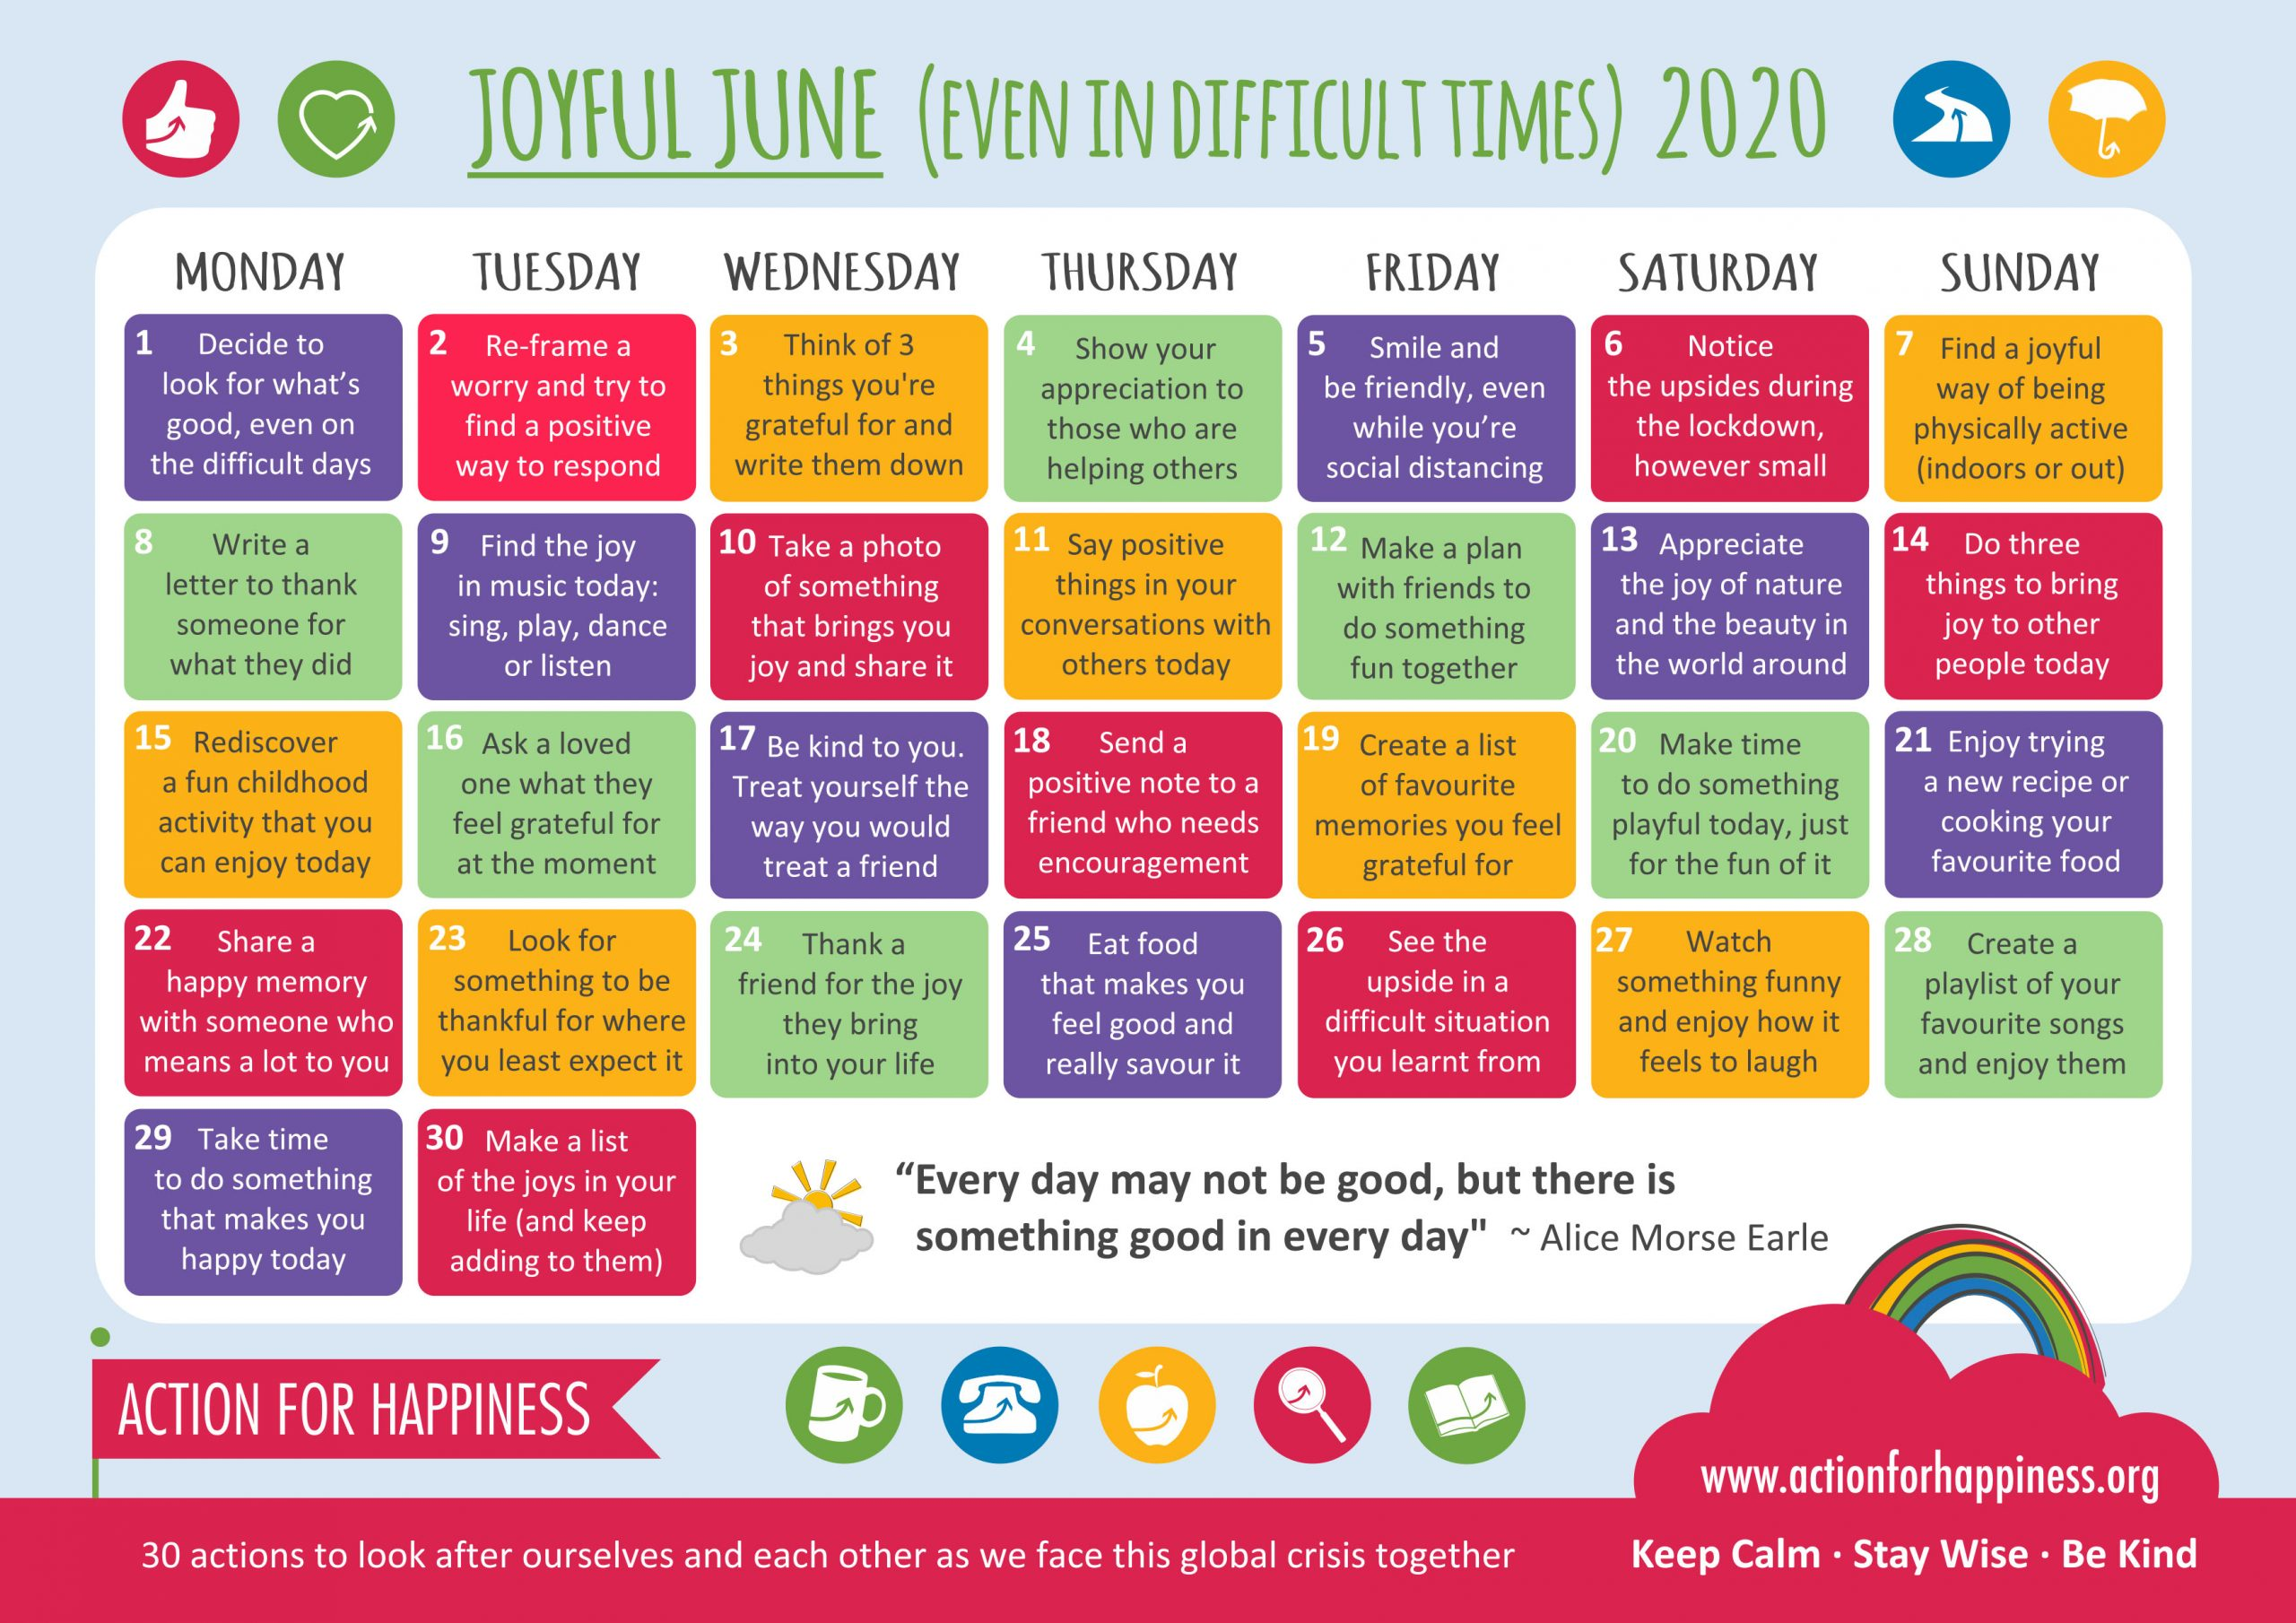 QE Staff and Students Participate in Joyful June